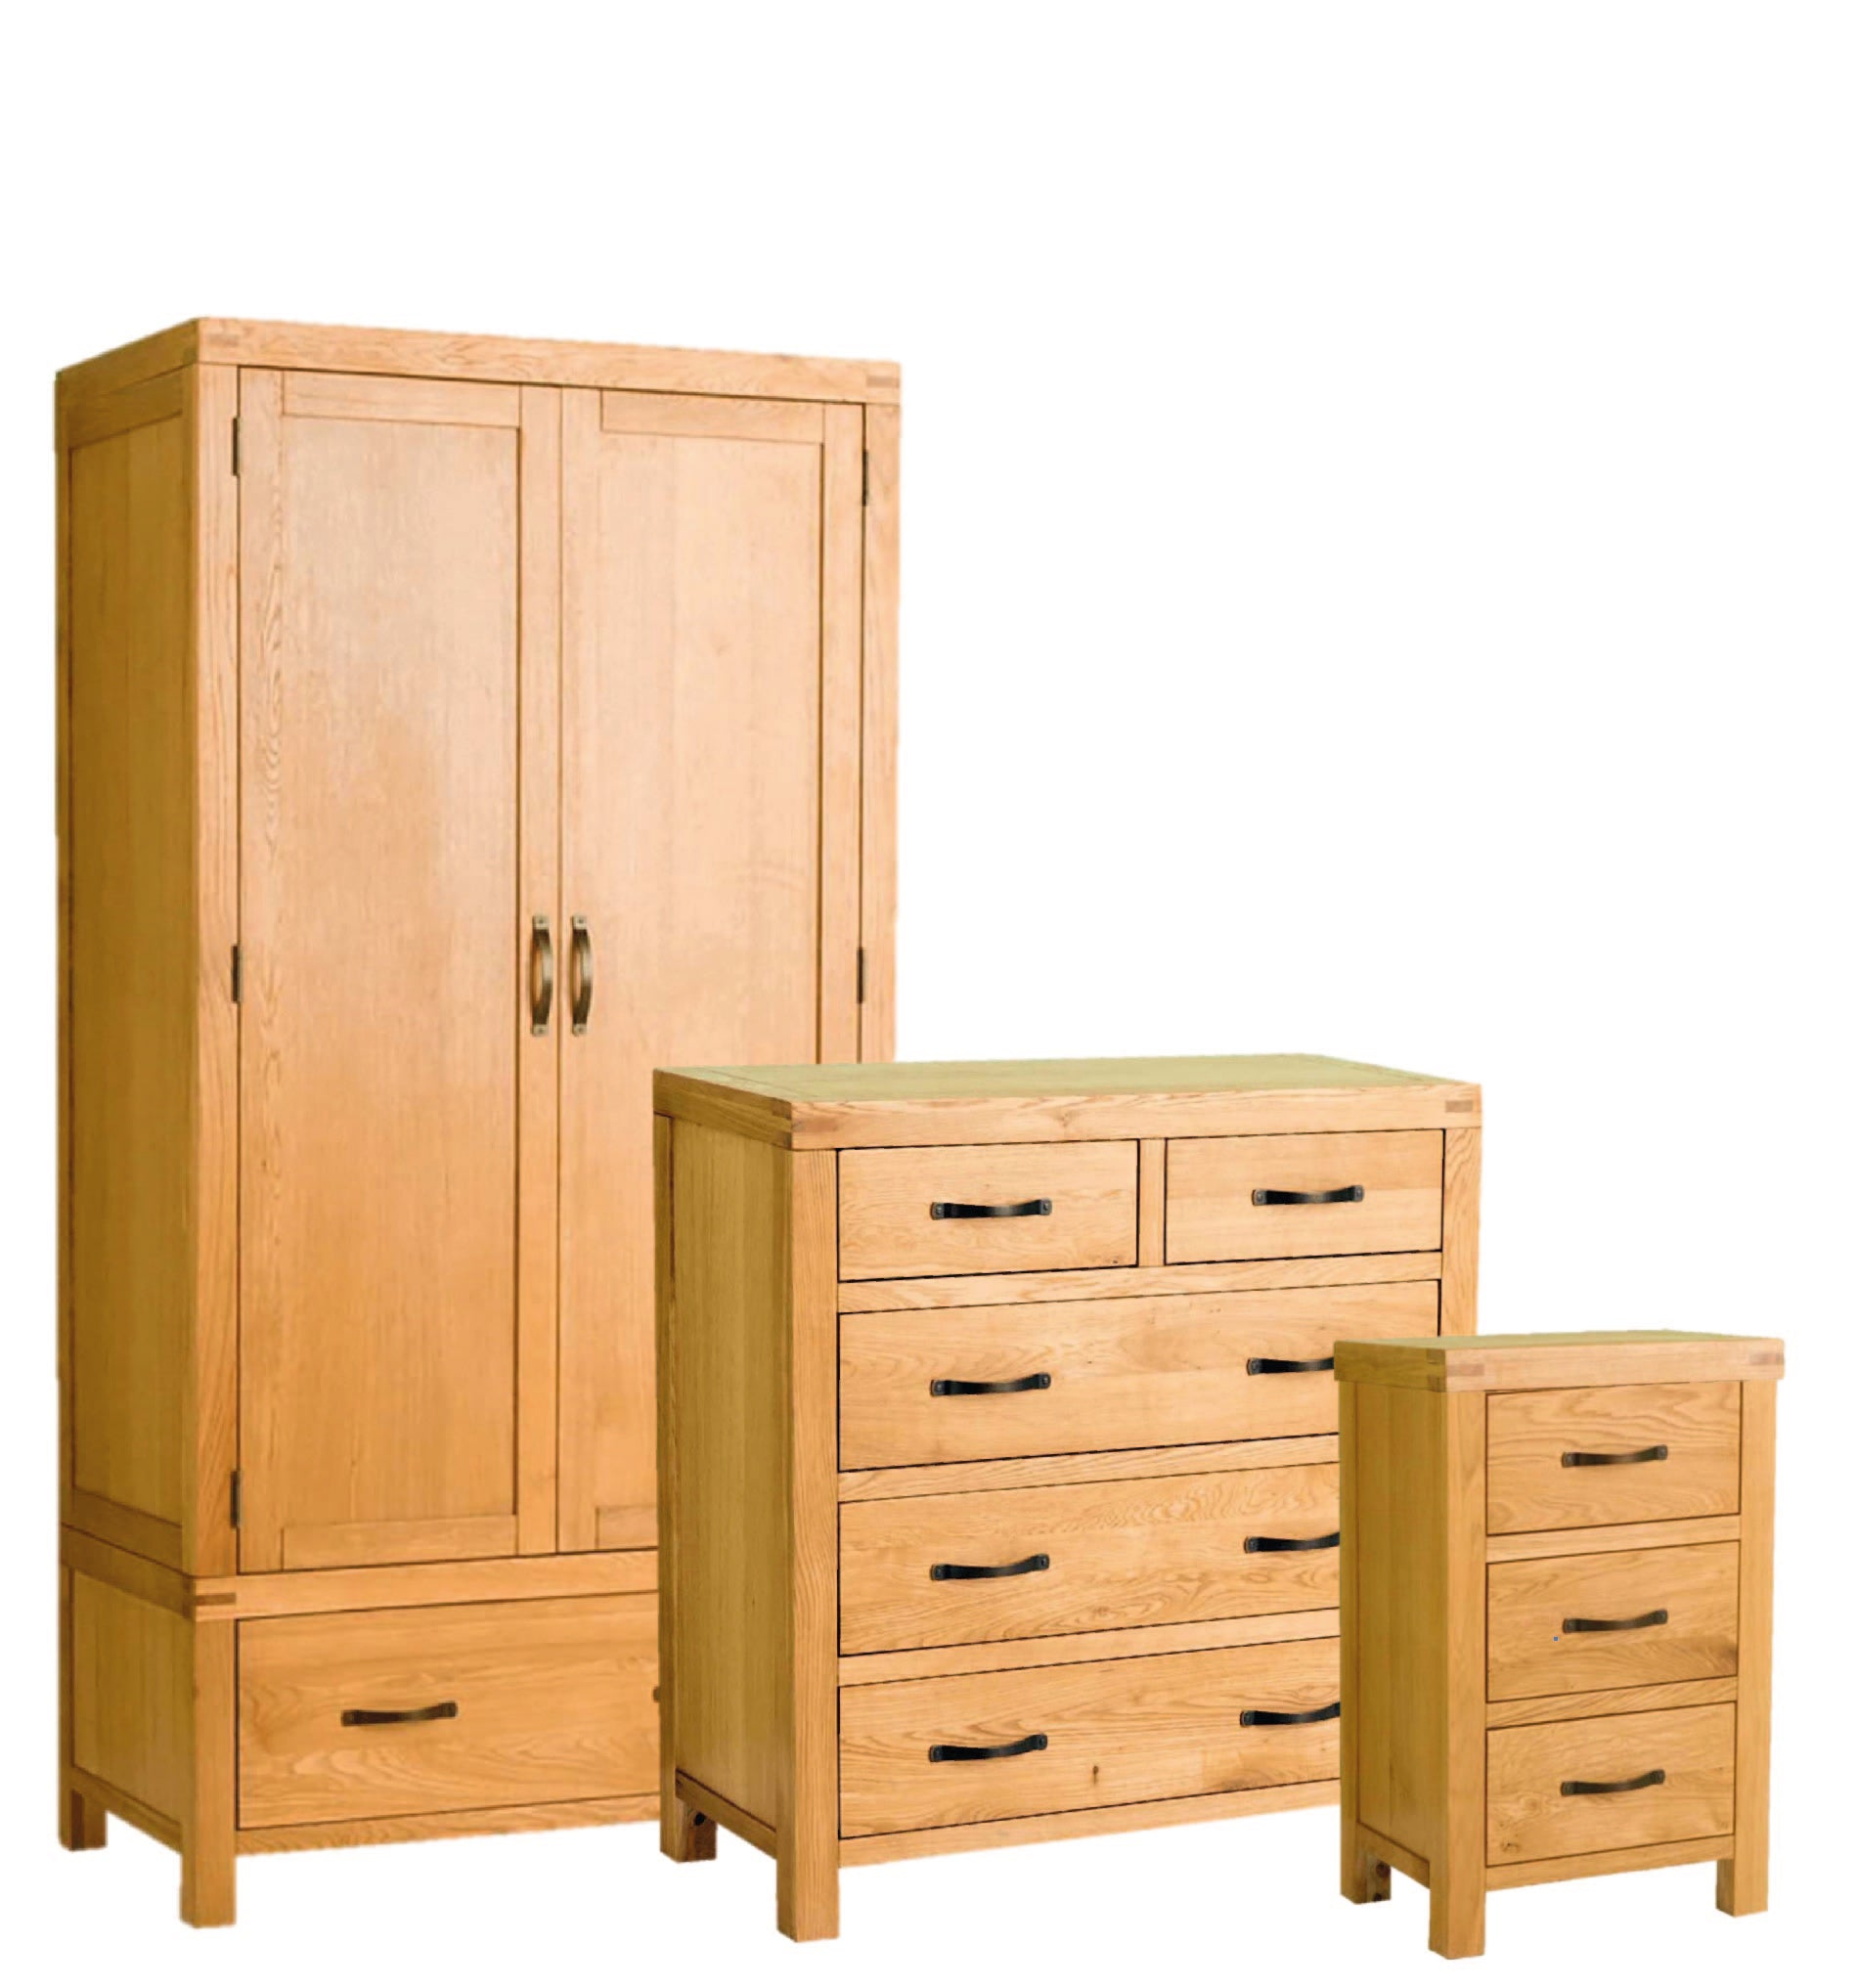 Abbey Waxed Oak Bedroom Furniture Set by Roseland Furniture